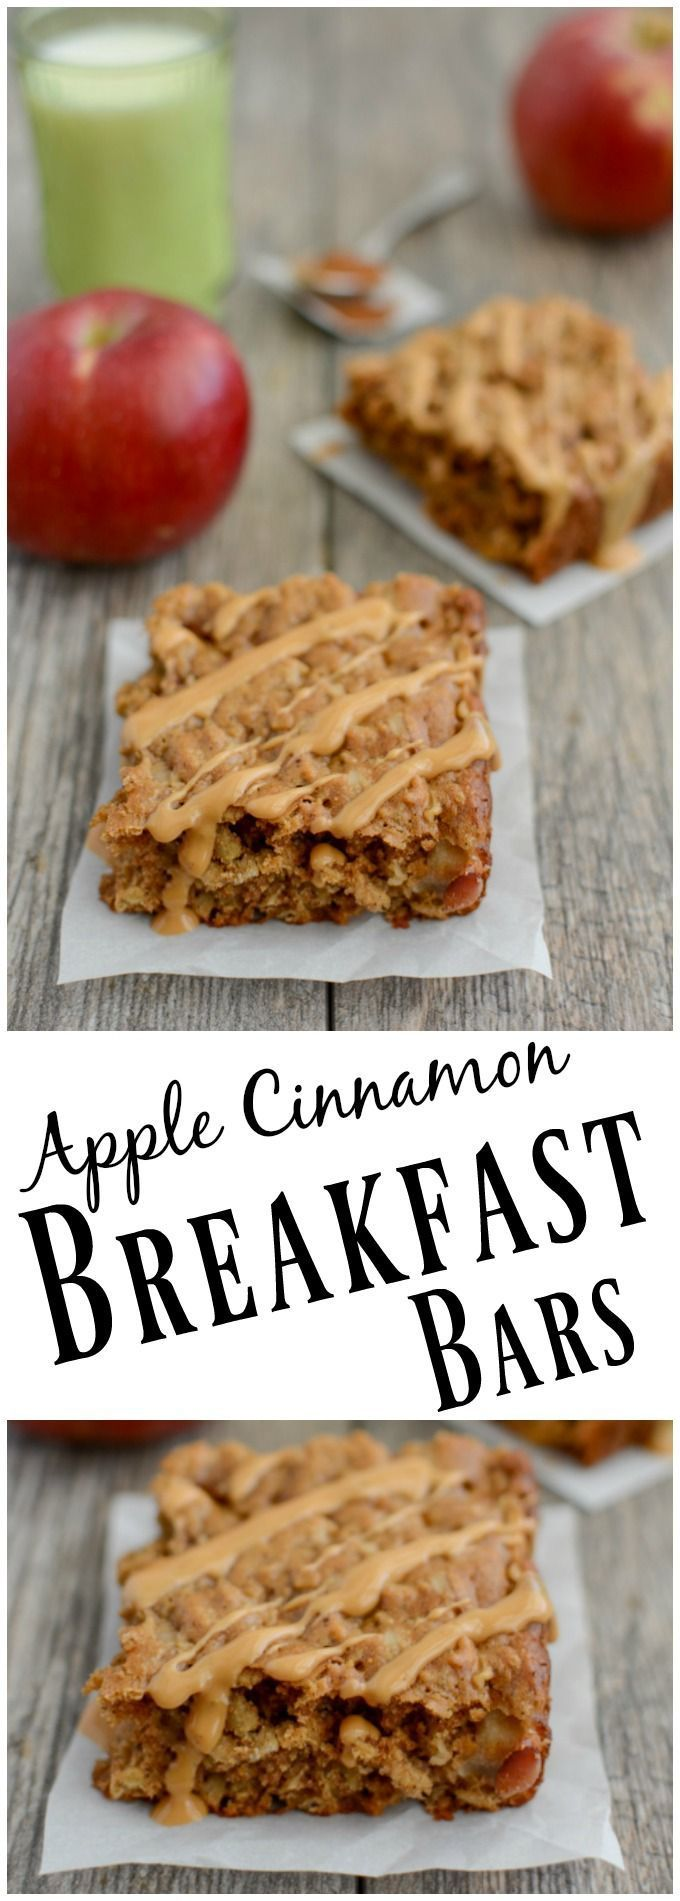 Bursting with fall flavor, these Apple Cinnamon Breakfast Bars are kid-friendly and full of protein and fiber for a healthy breakfast or snack. (Vegan Oatmeal Cinnamon)